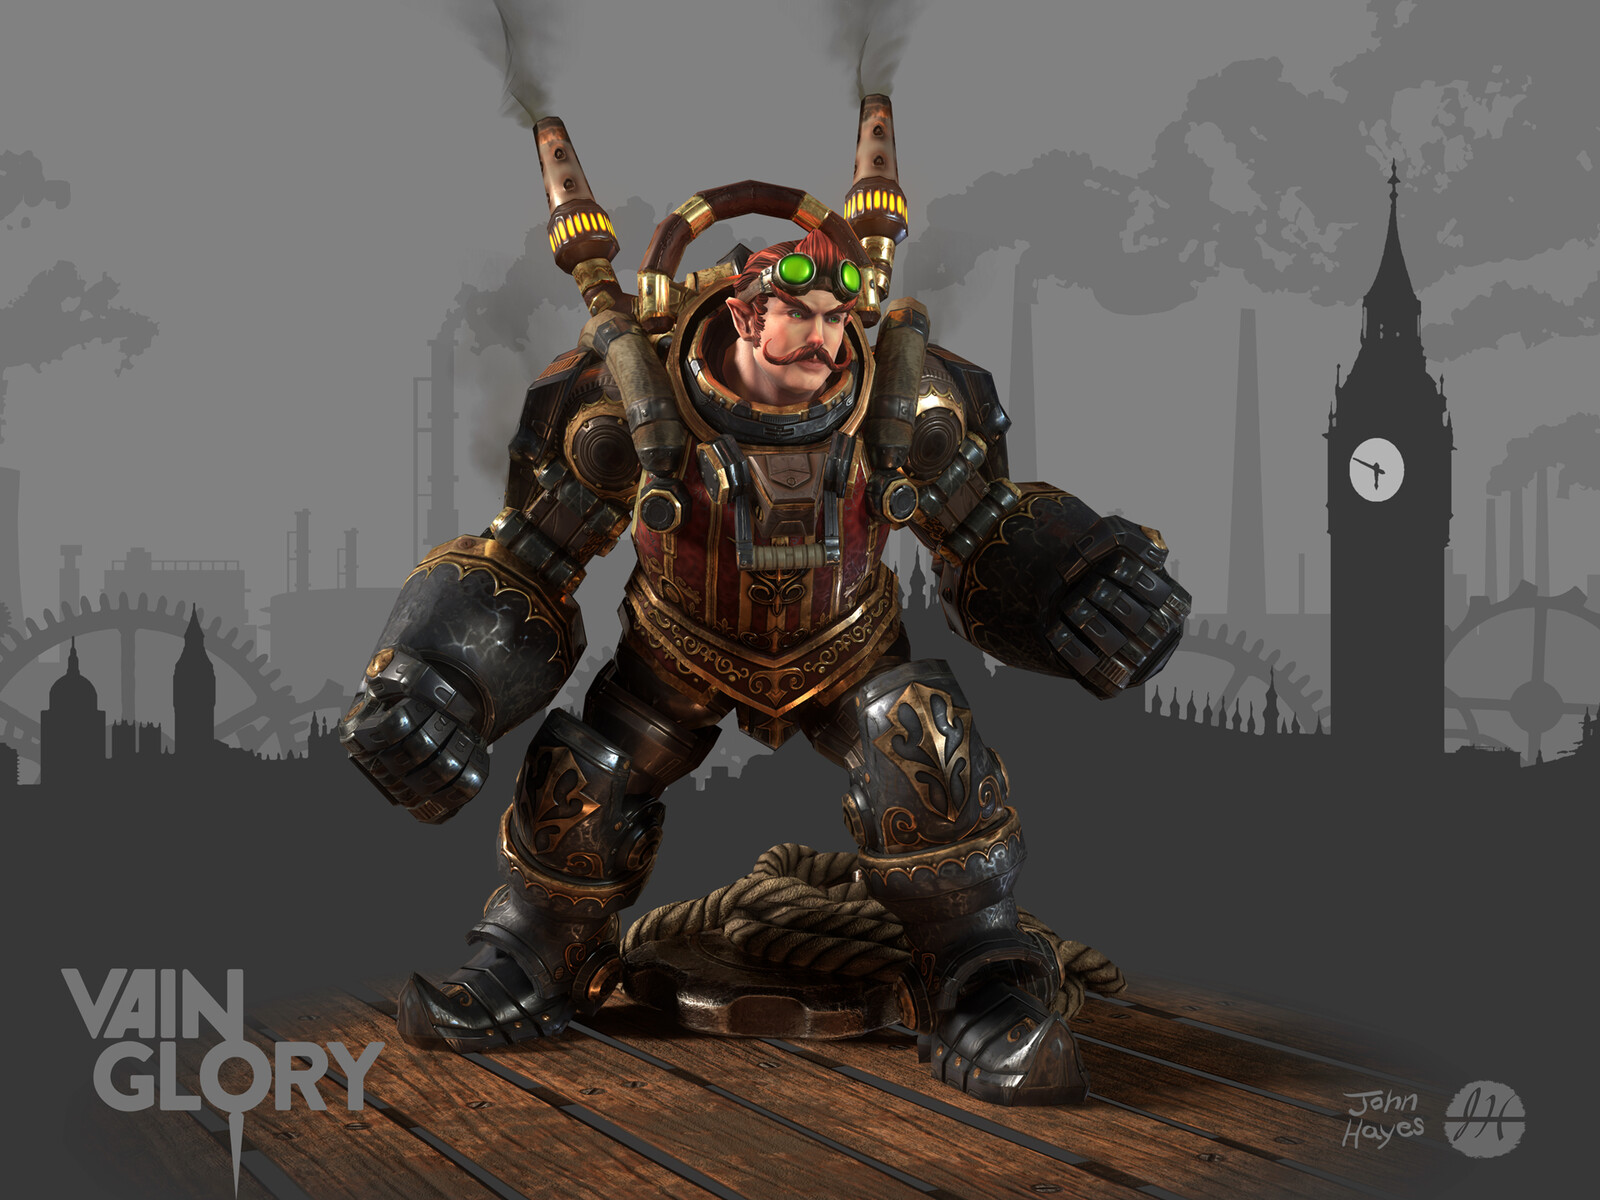 Steam Tony skin from Vainglory